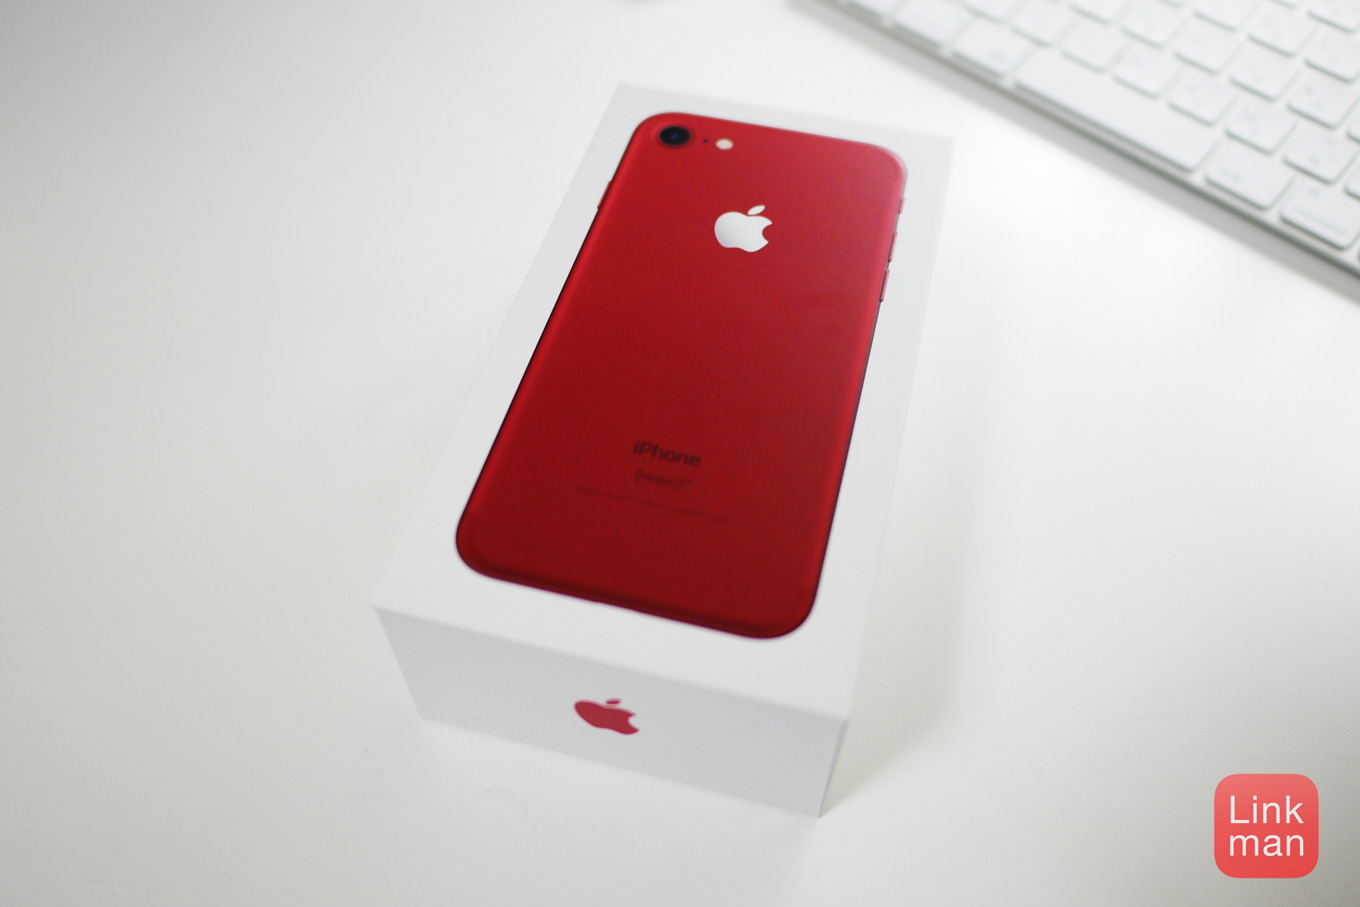 Iphone7red review 01